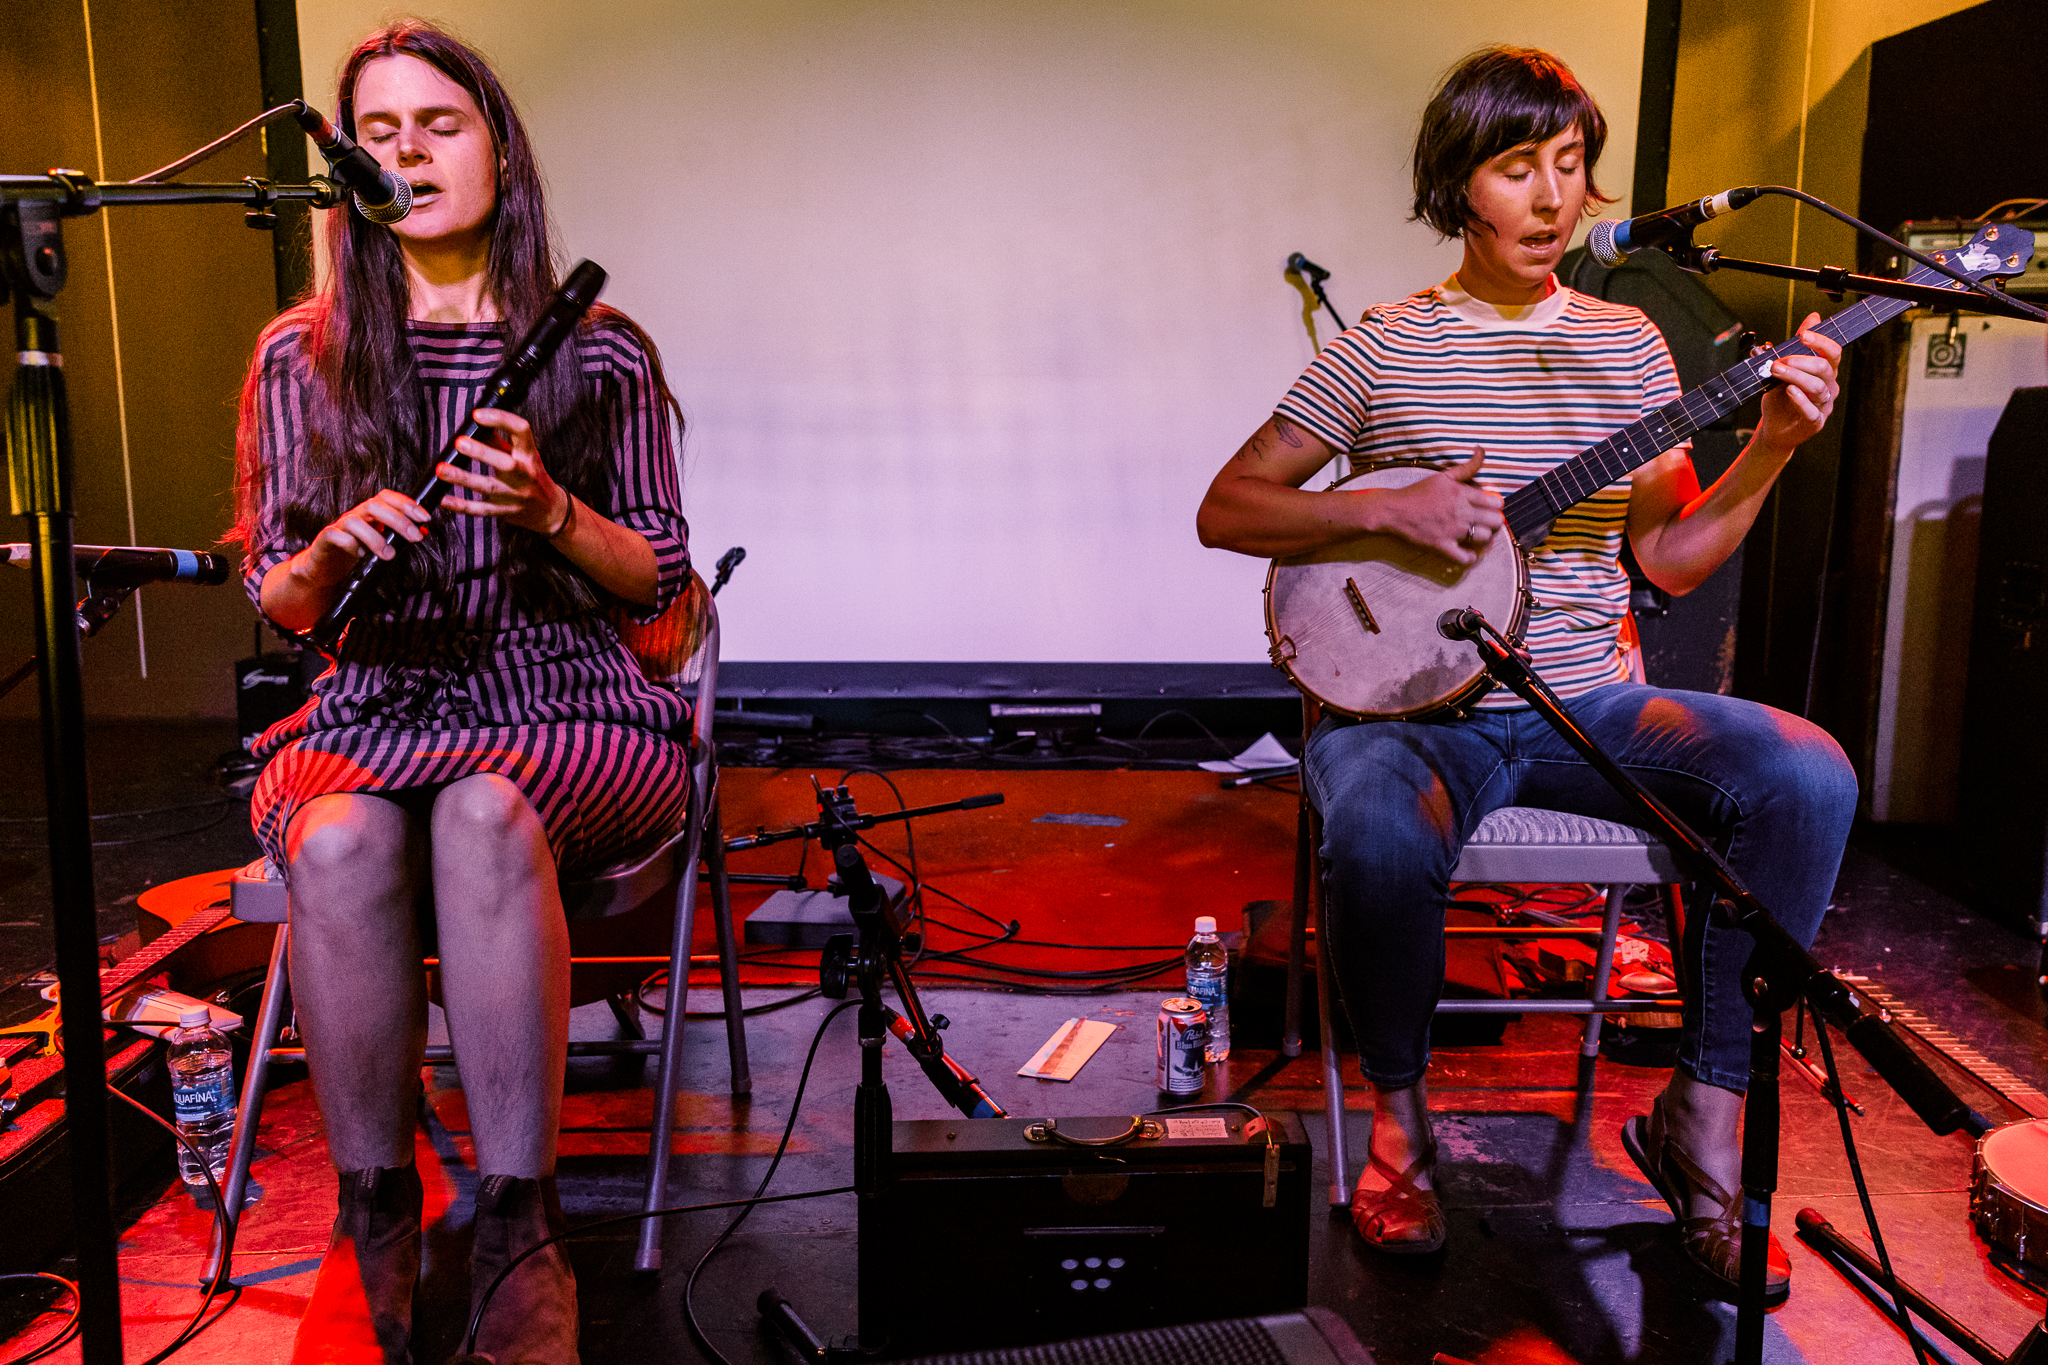 House and Land performing at Hopscotch Music Festival 2017 in Raleigh, NC - 9/8/2017 (photo by Matt Condon / @arcane93)